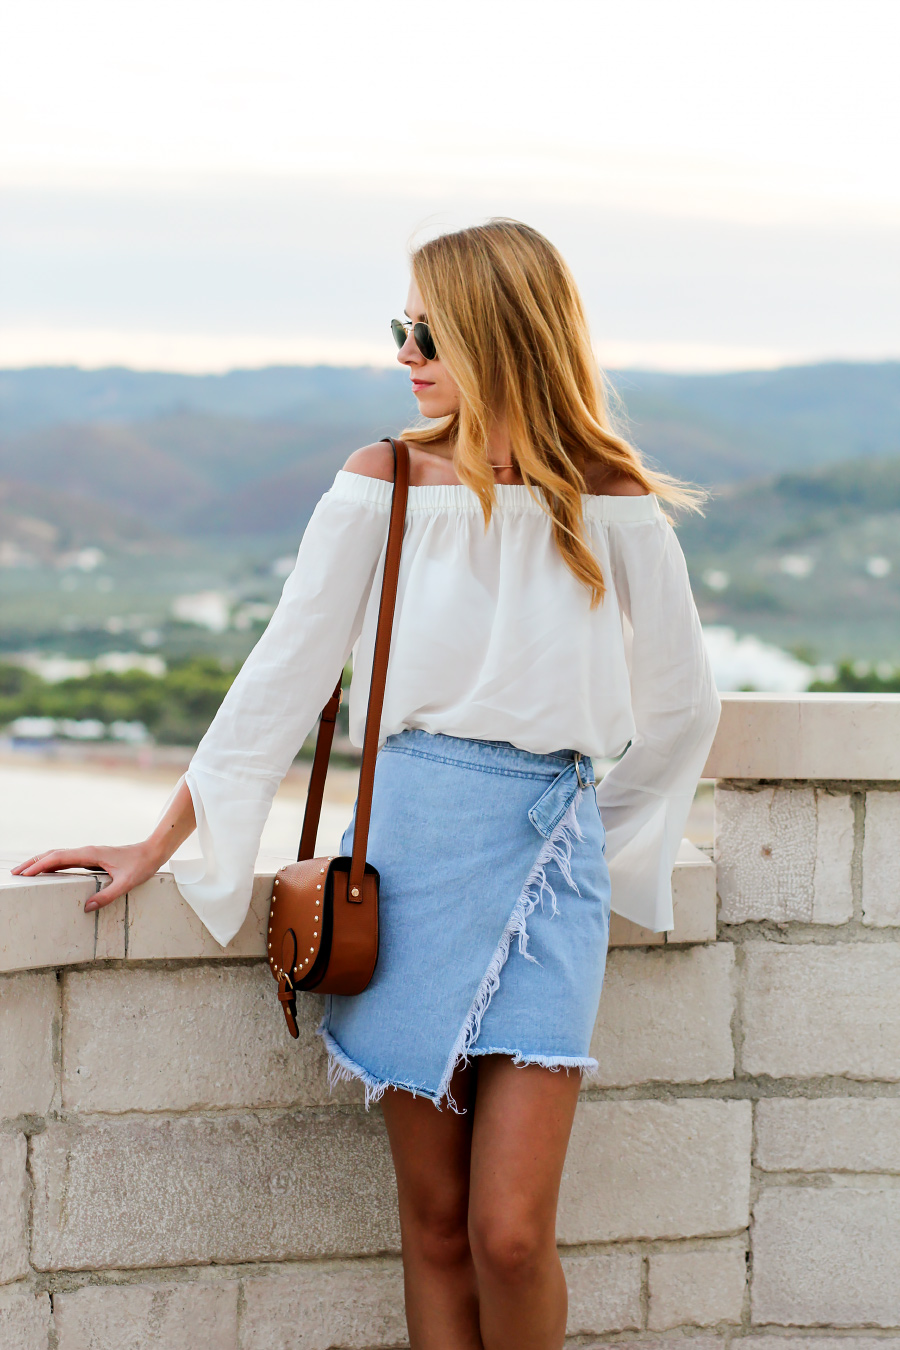 off-the-shoulder blouse with distressed denim skirt and tan bag